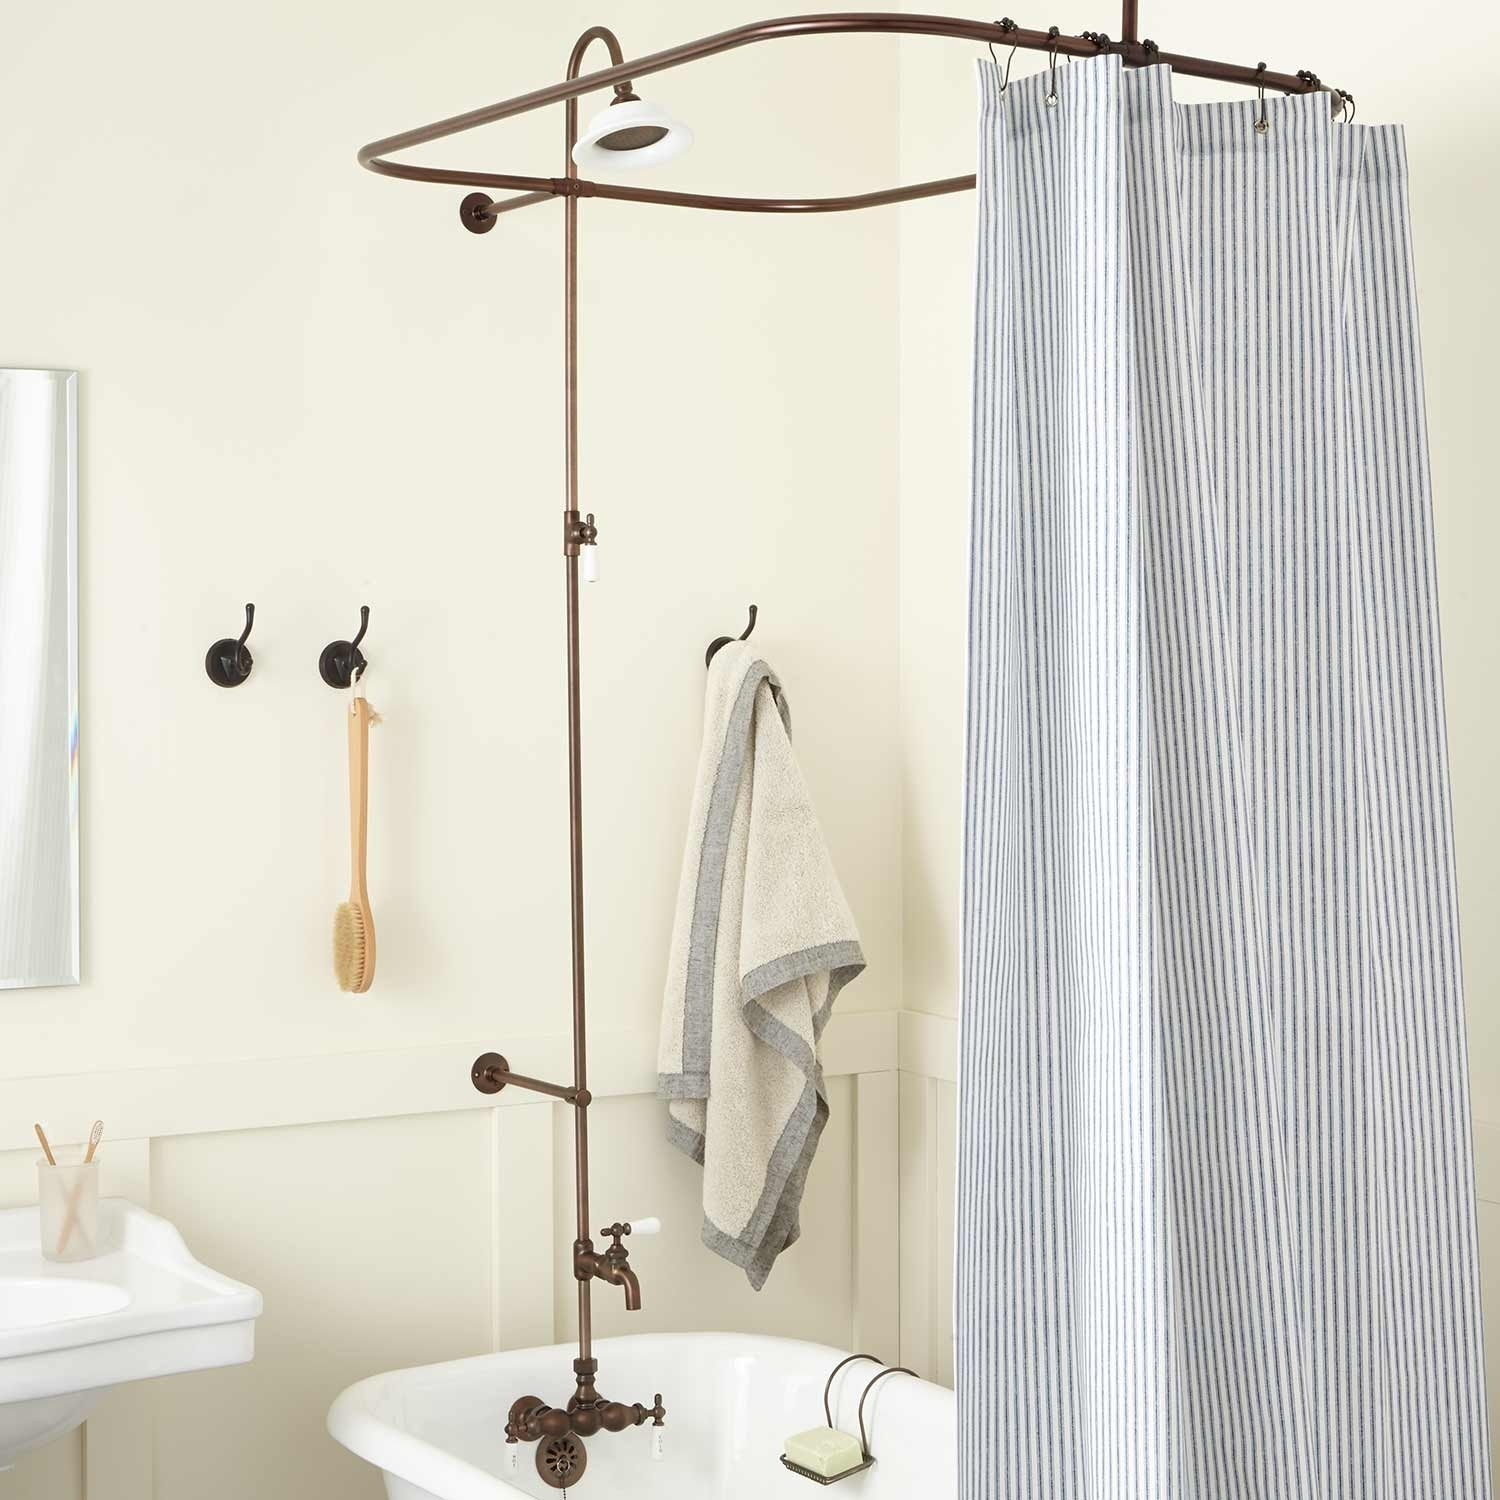 Clawfoot Tub Shower Curtain Rods Signature Hardware In Claw Tub Shower Curtains (Image 13 of 25)